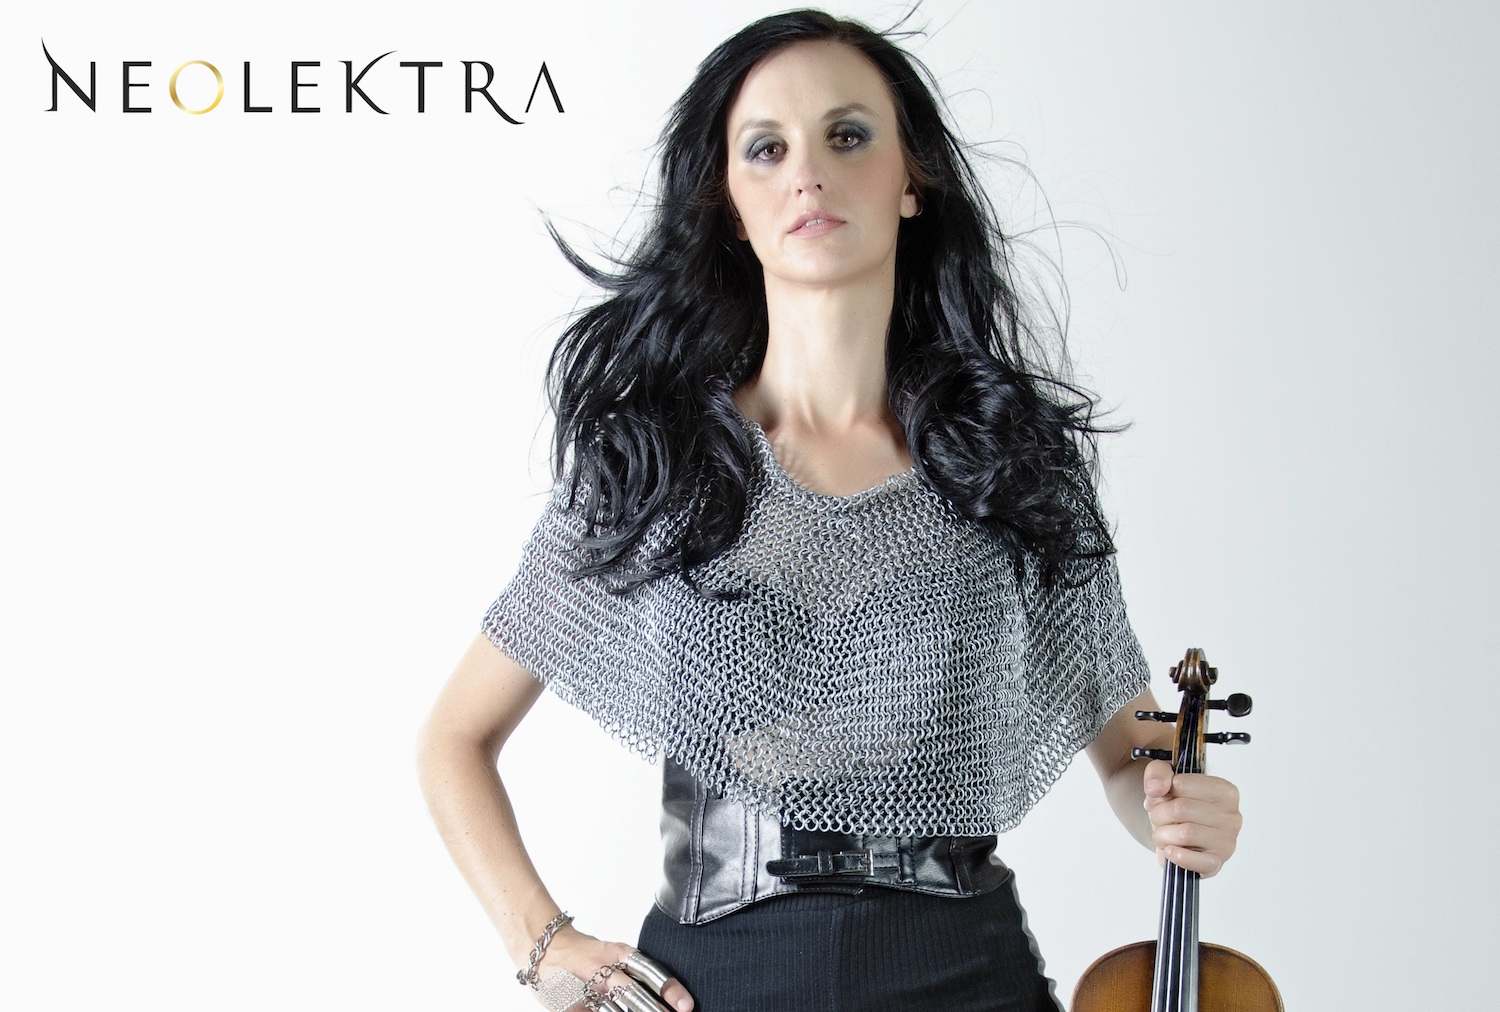 {Behind The Music} Neolektra on Birth of a Heroine